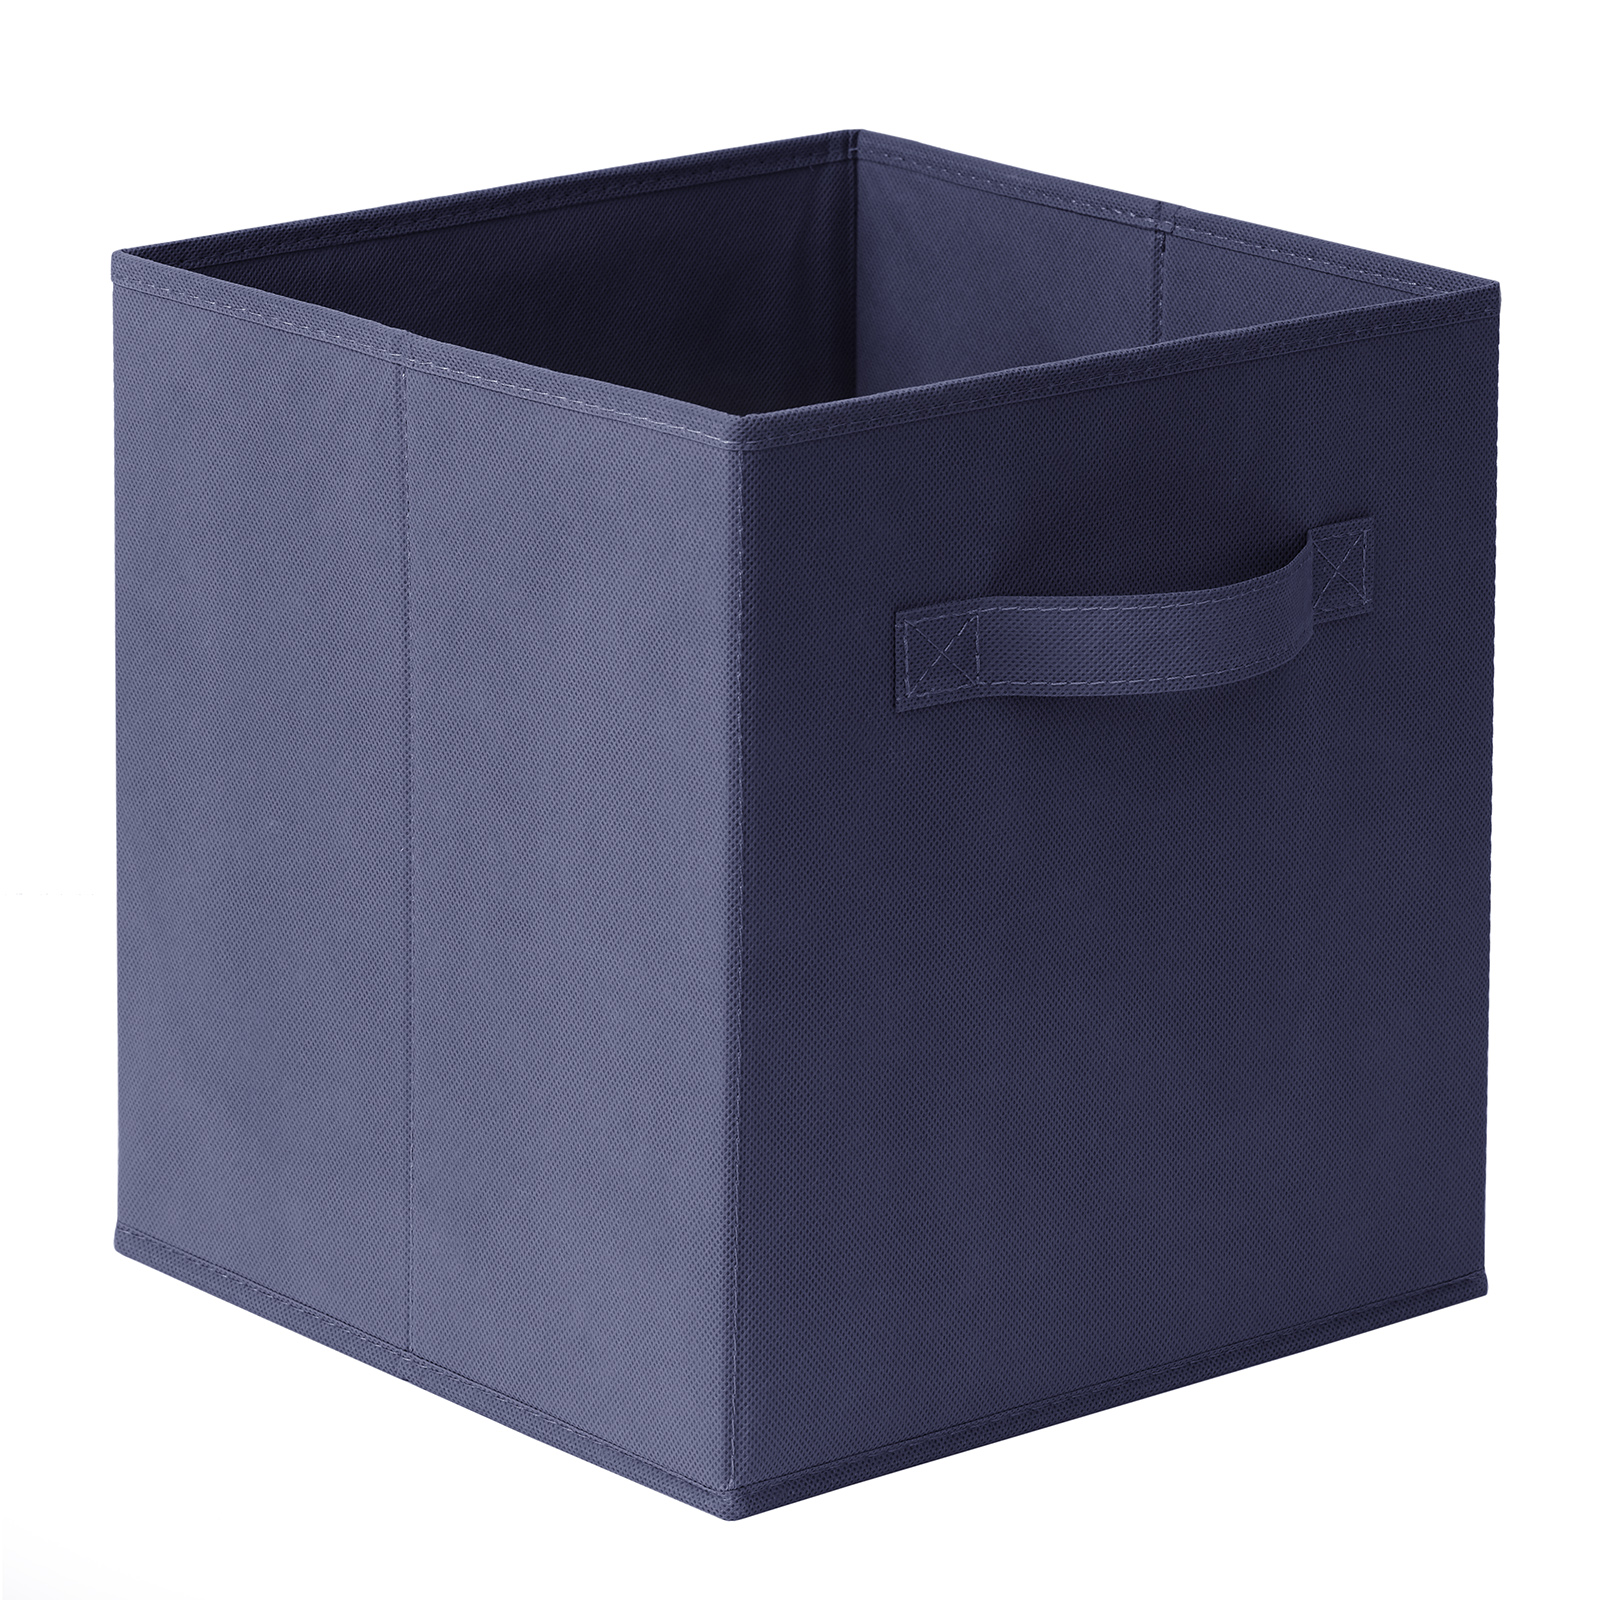 6-Collapsible-Foldable-Cloth-Fabric-Cubby-Cube-Storage-Bins-Baskets-for-Shelves thumbnail 61